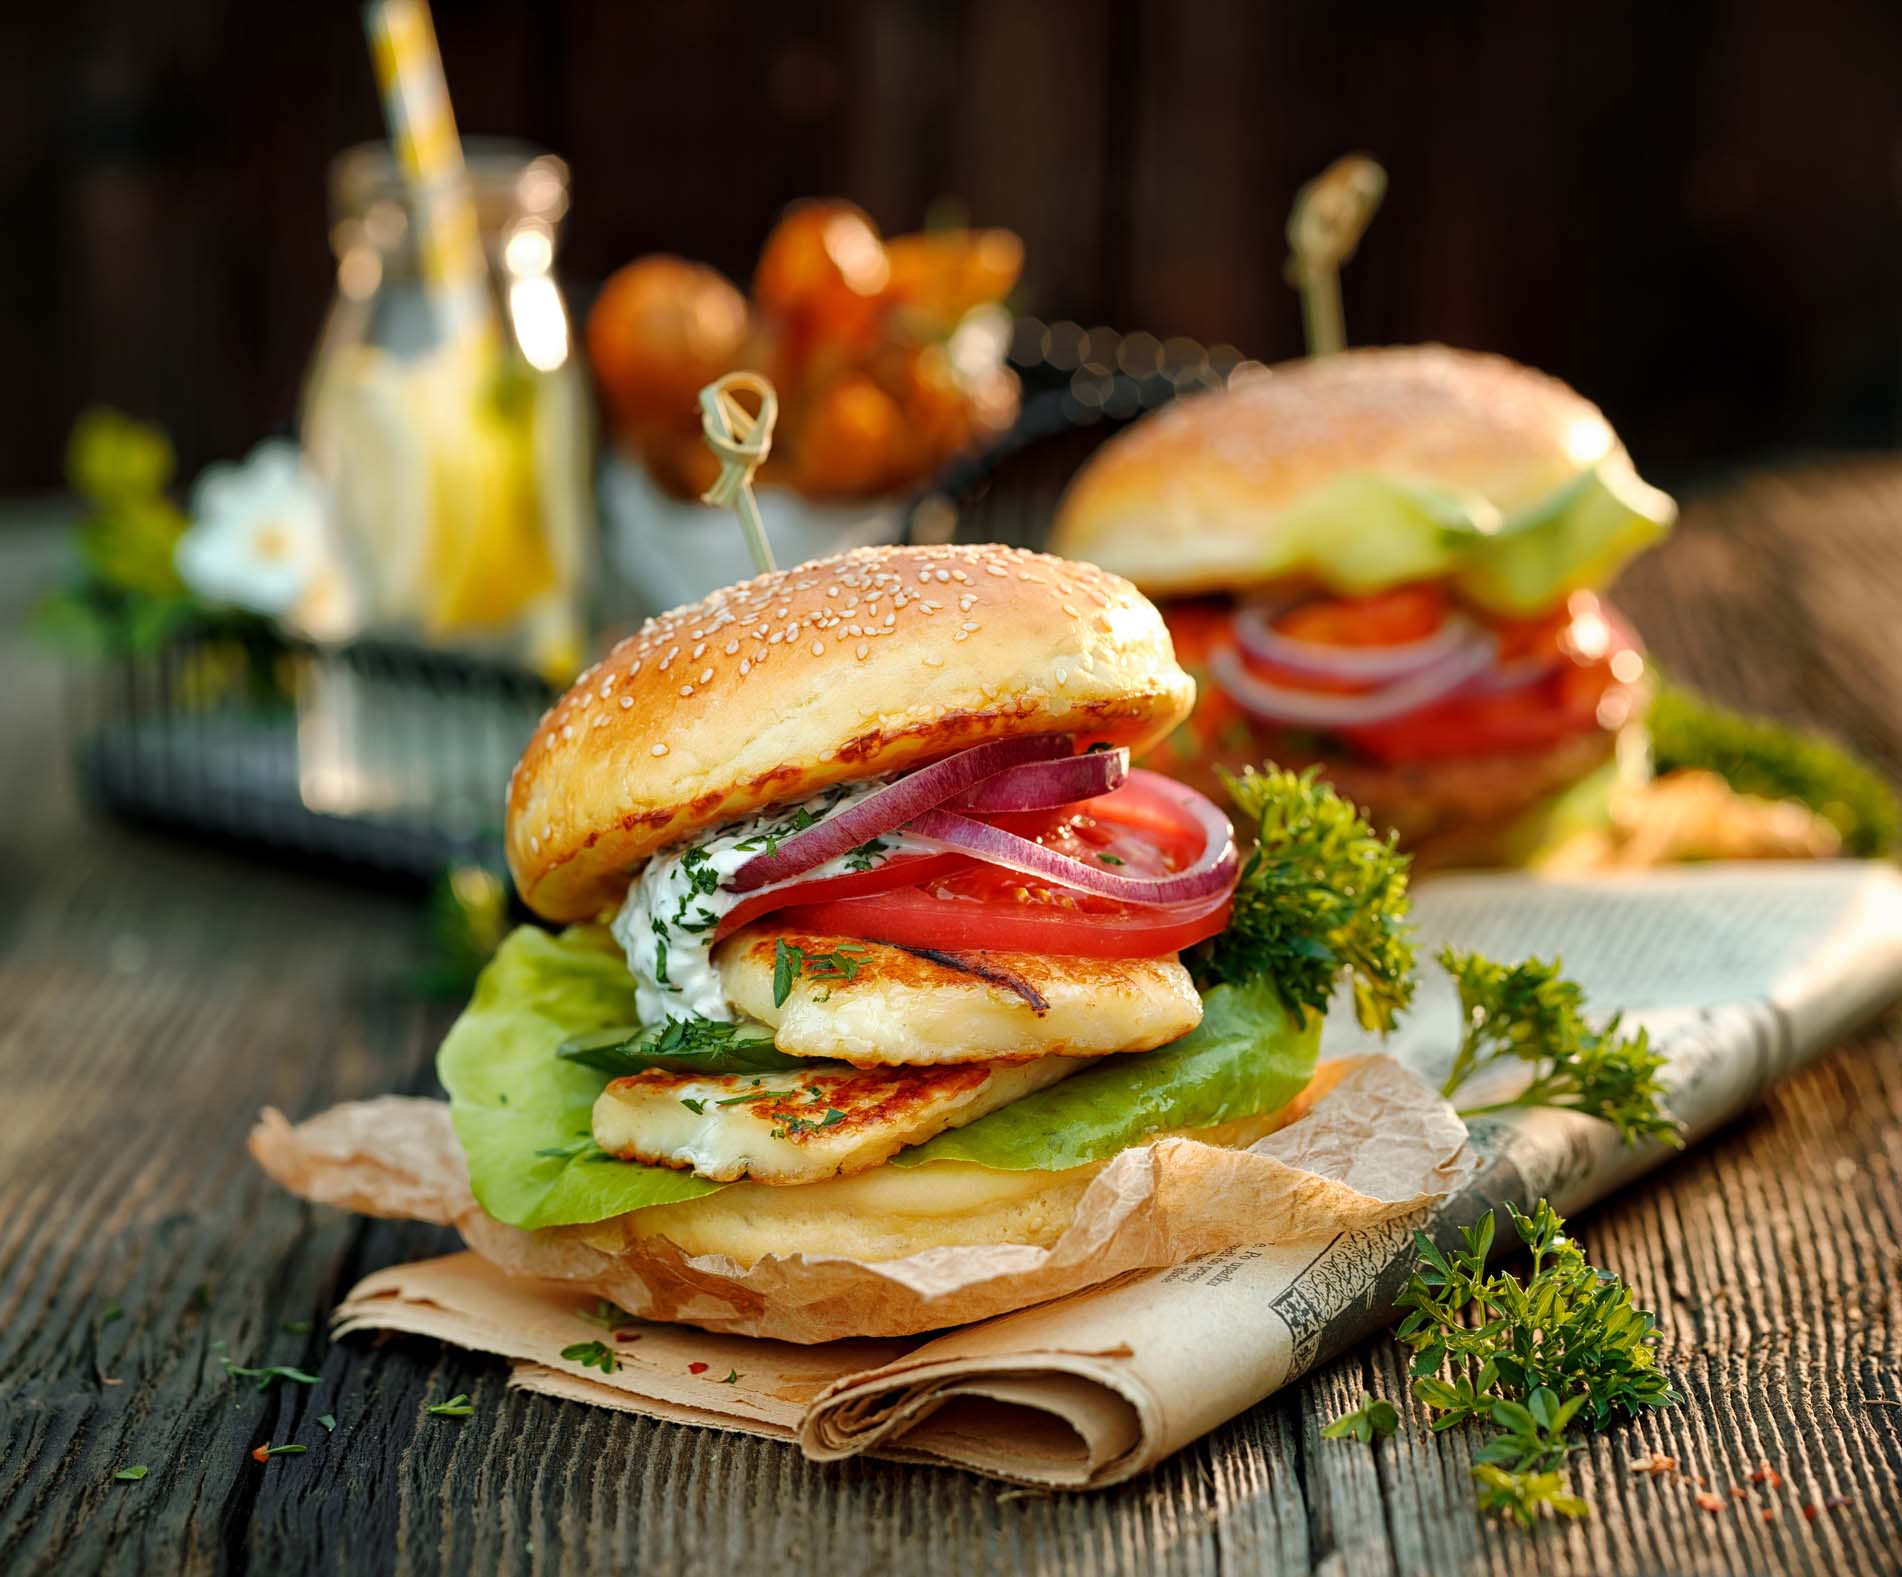 A pair of hamburgers with onions, tomatoes and halloumi.